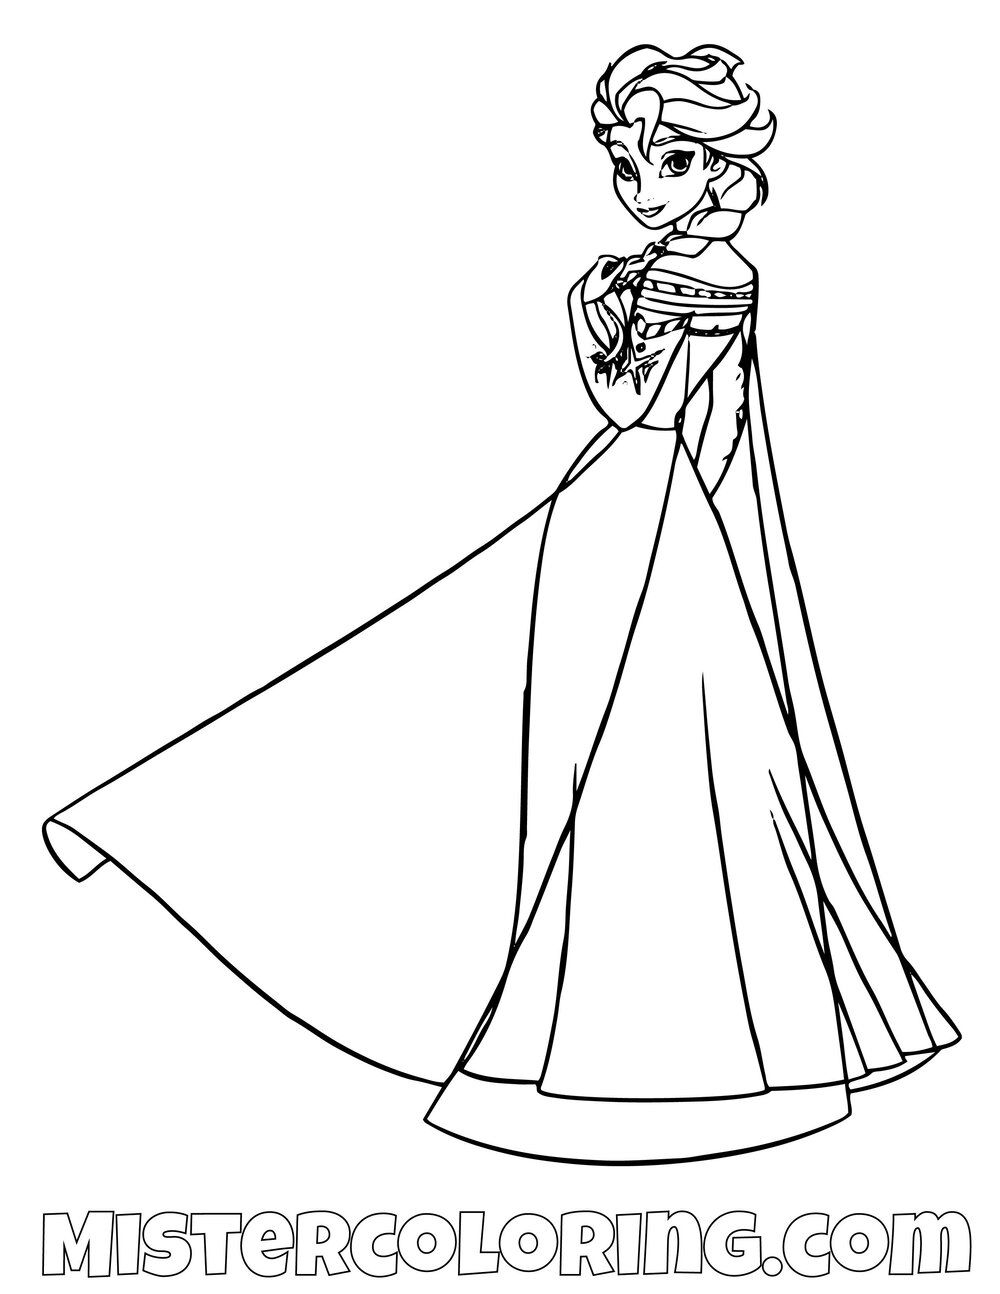 Queen Elsa Dress Frozen 2 Coloring Pages For Kids Coloring Pages Coloring Pages For Kids Disney Coloring Pages